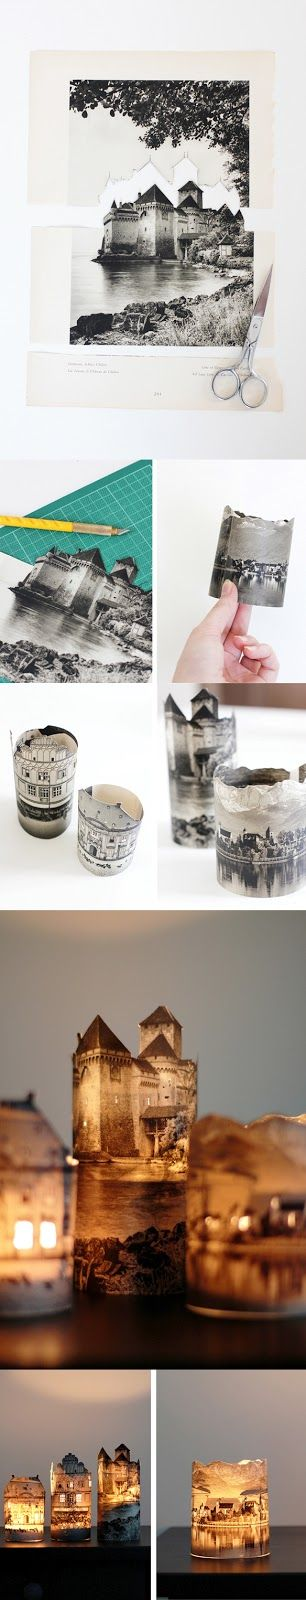 DIY Houses by Night ~ Wedding picture with church in background ~ Our favorite Vacation photos ~ great for entry way display!